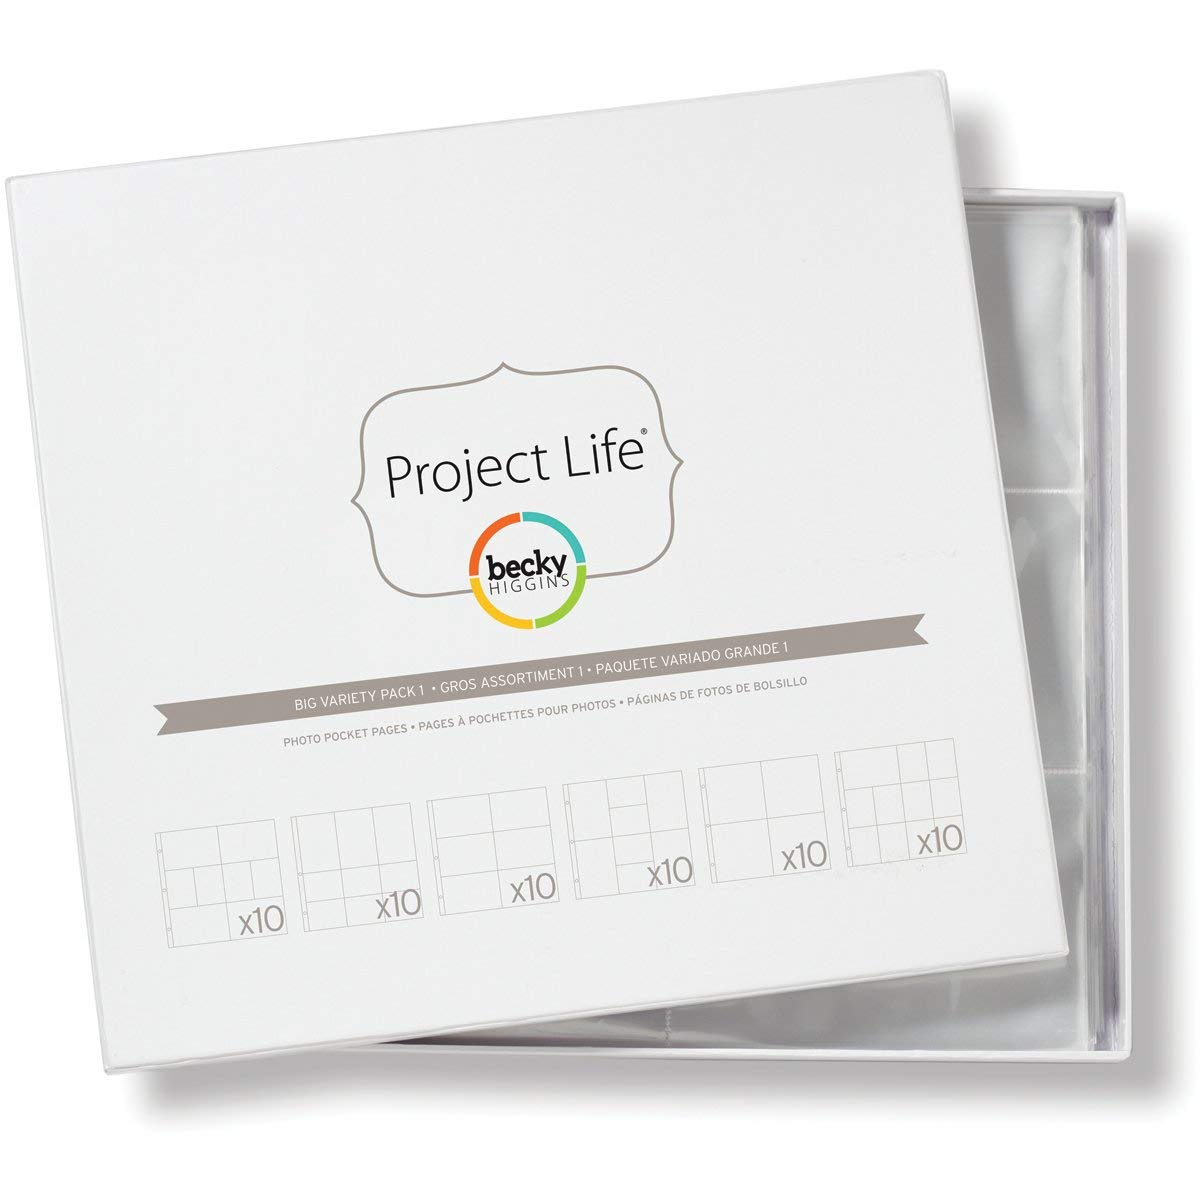 Project Life - Big Variety Pack 1 Photo Pocket Pages by Becky Higgins (Image #1)